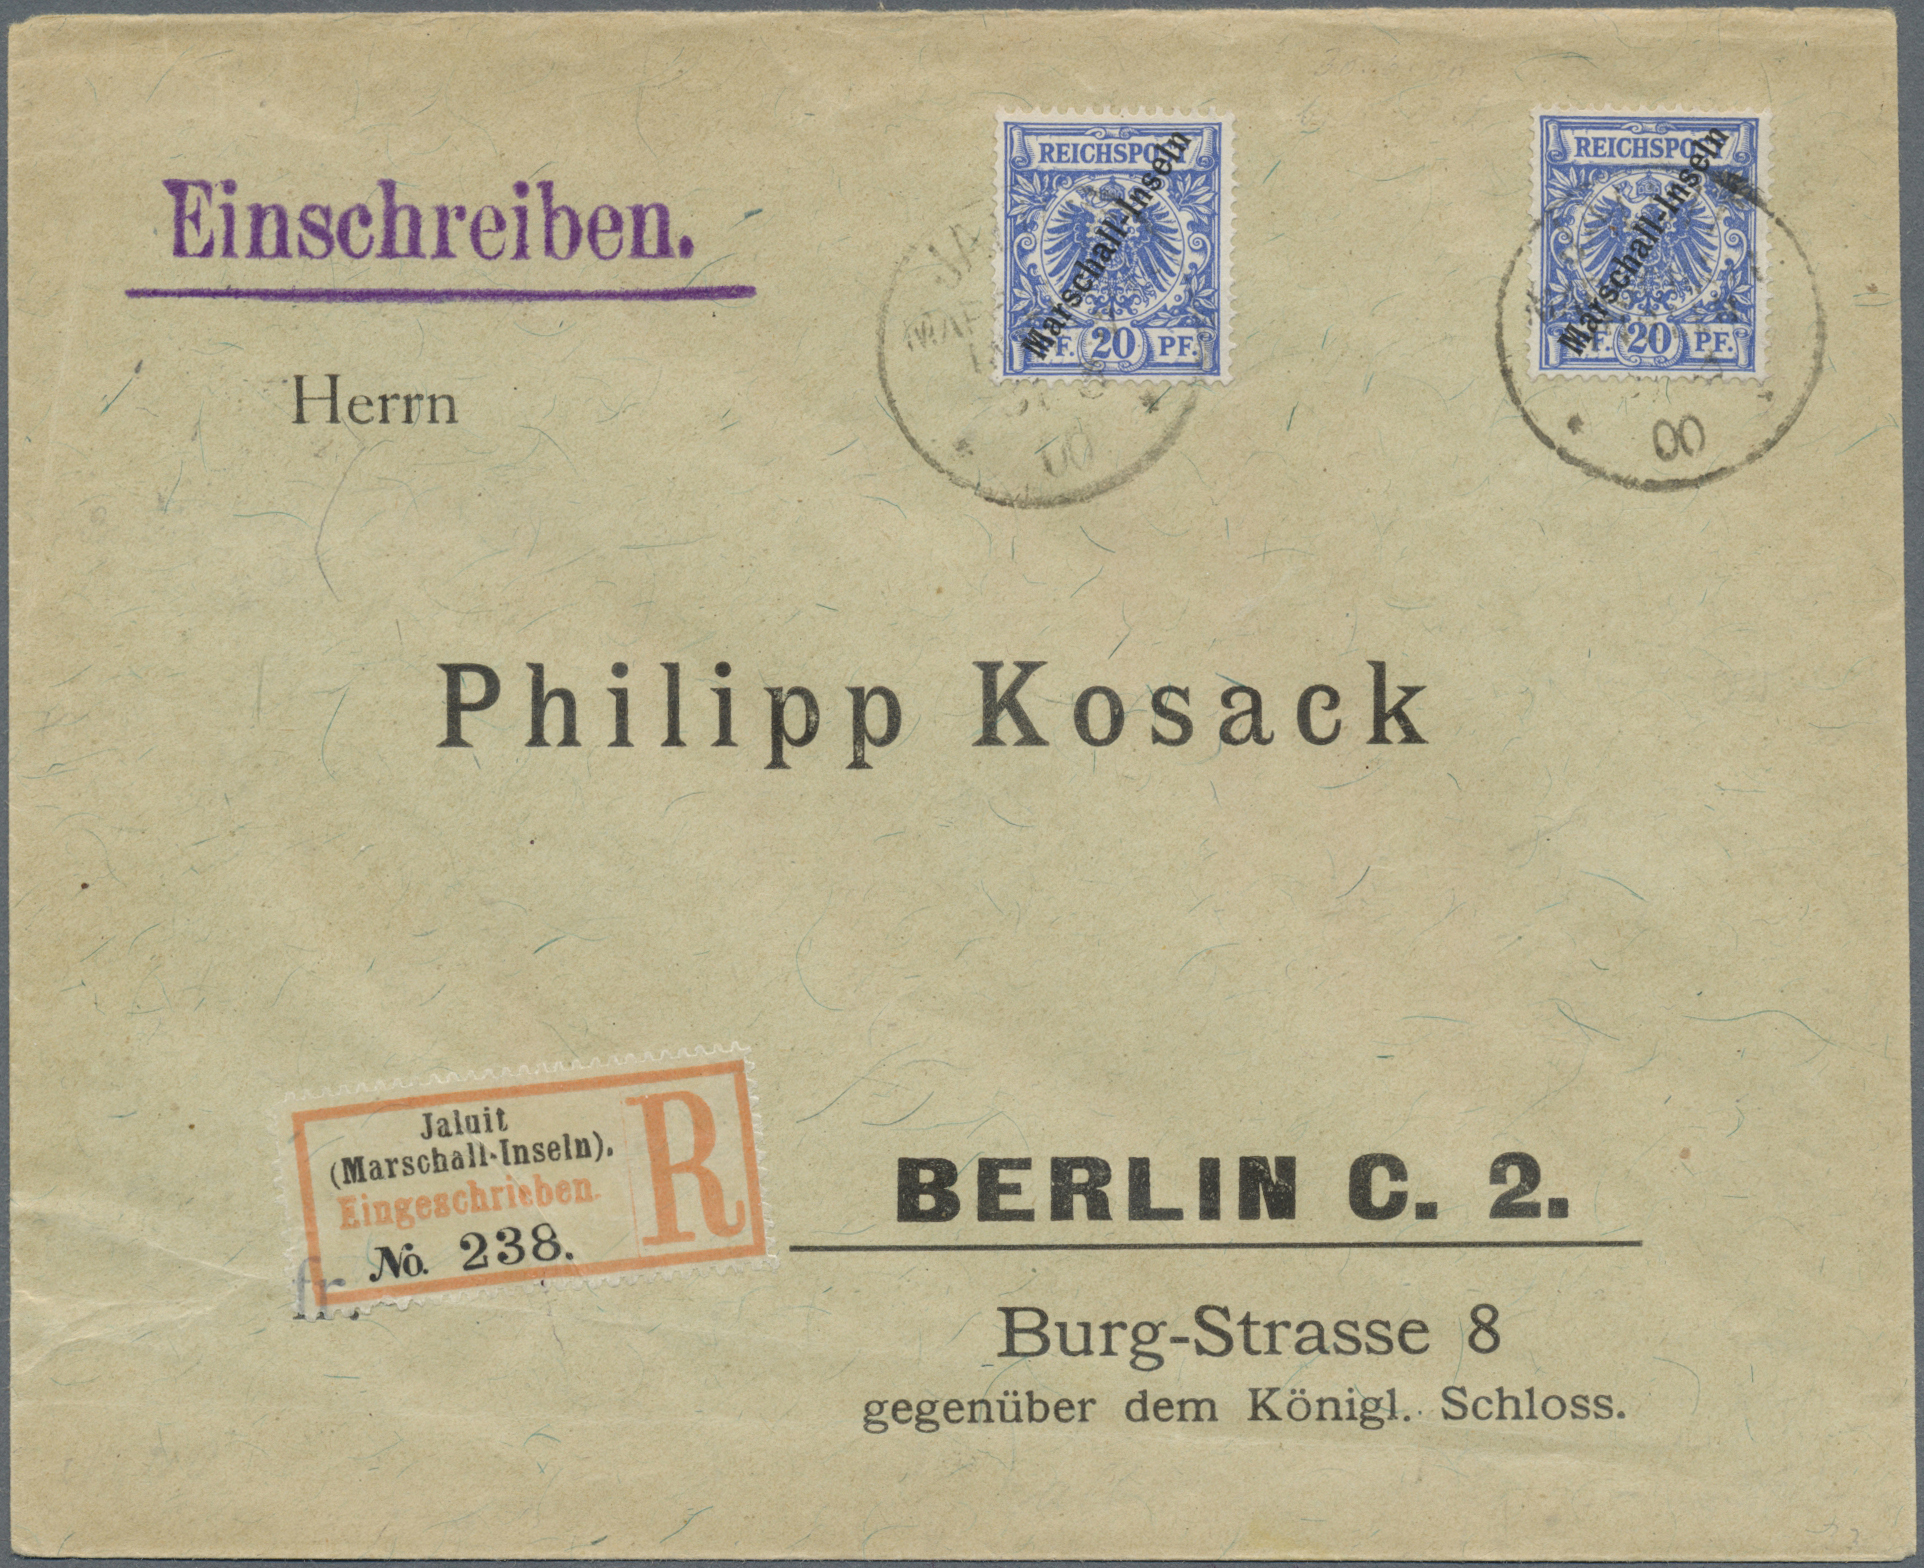 Lot 18767 - Deutsche Kolonien - Marshall-Inseln  -  Auktionshaus Christoph Gärtner GmbH & Co. KG Auction #40 Germany, Picture Post Cards, Collections Overseas, Thematics